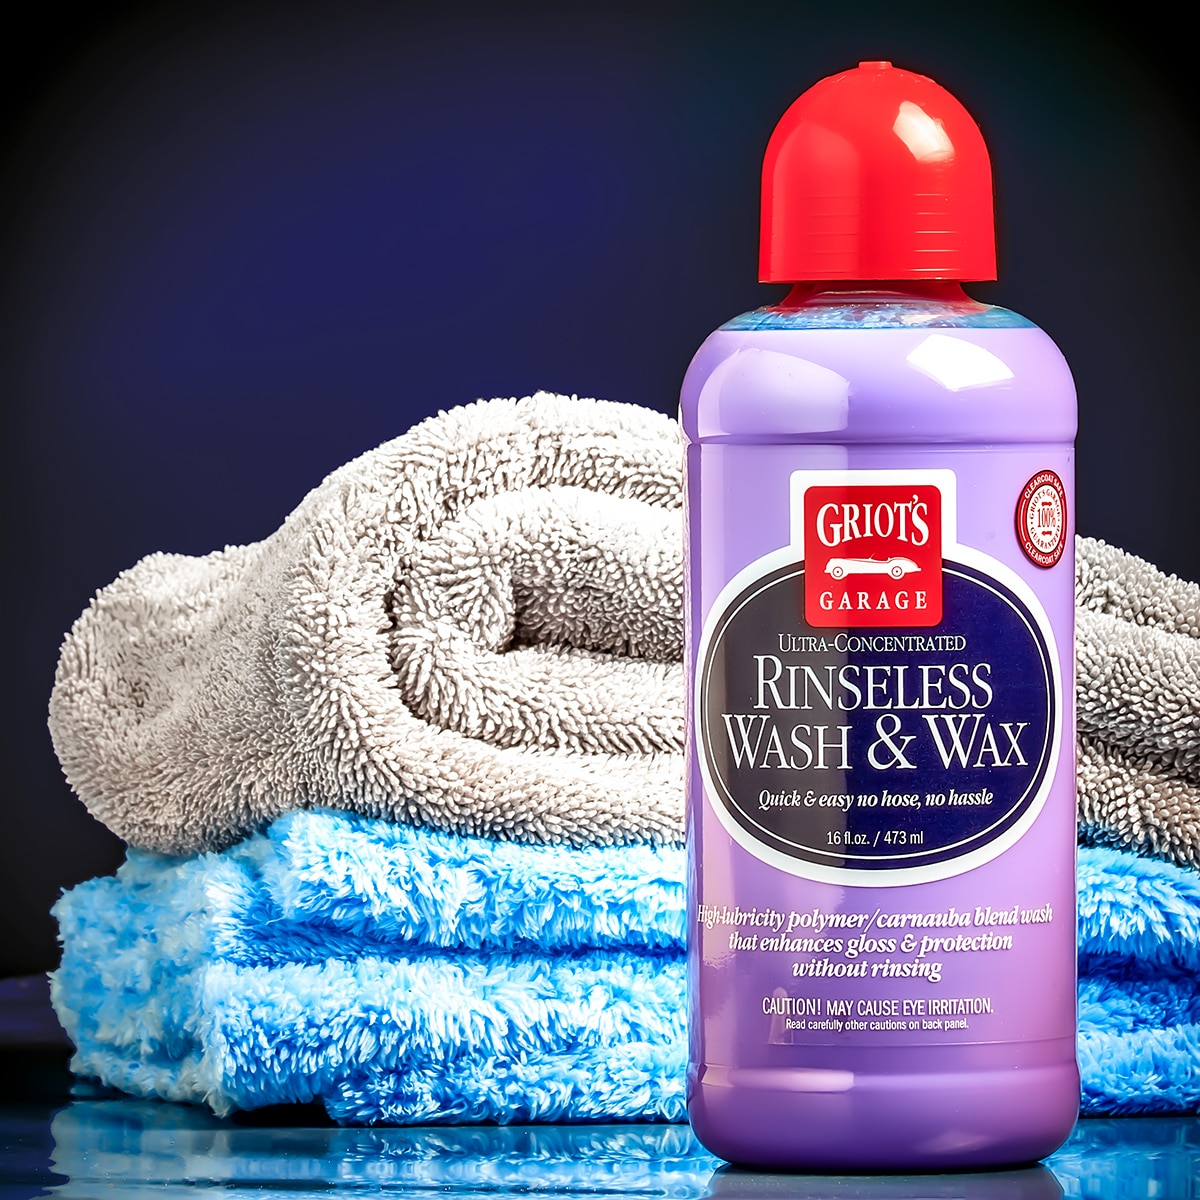 Griot's Garage Rinseless Wash & Wax System